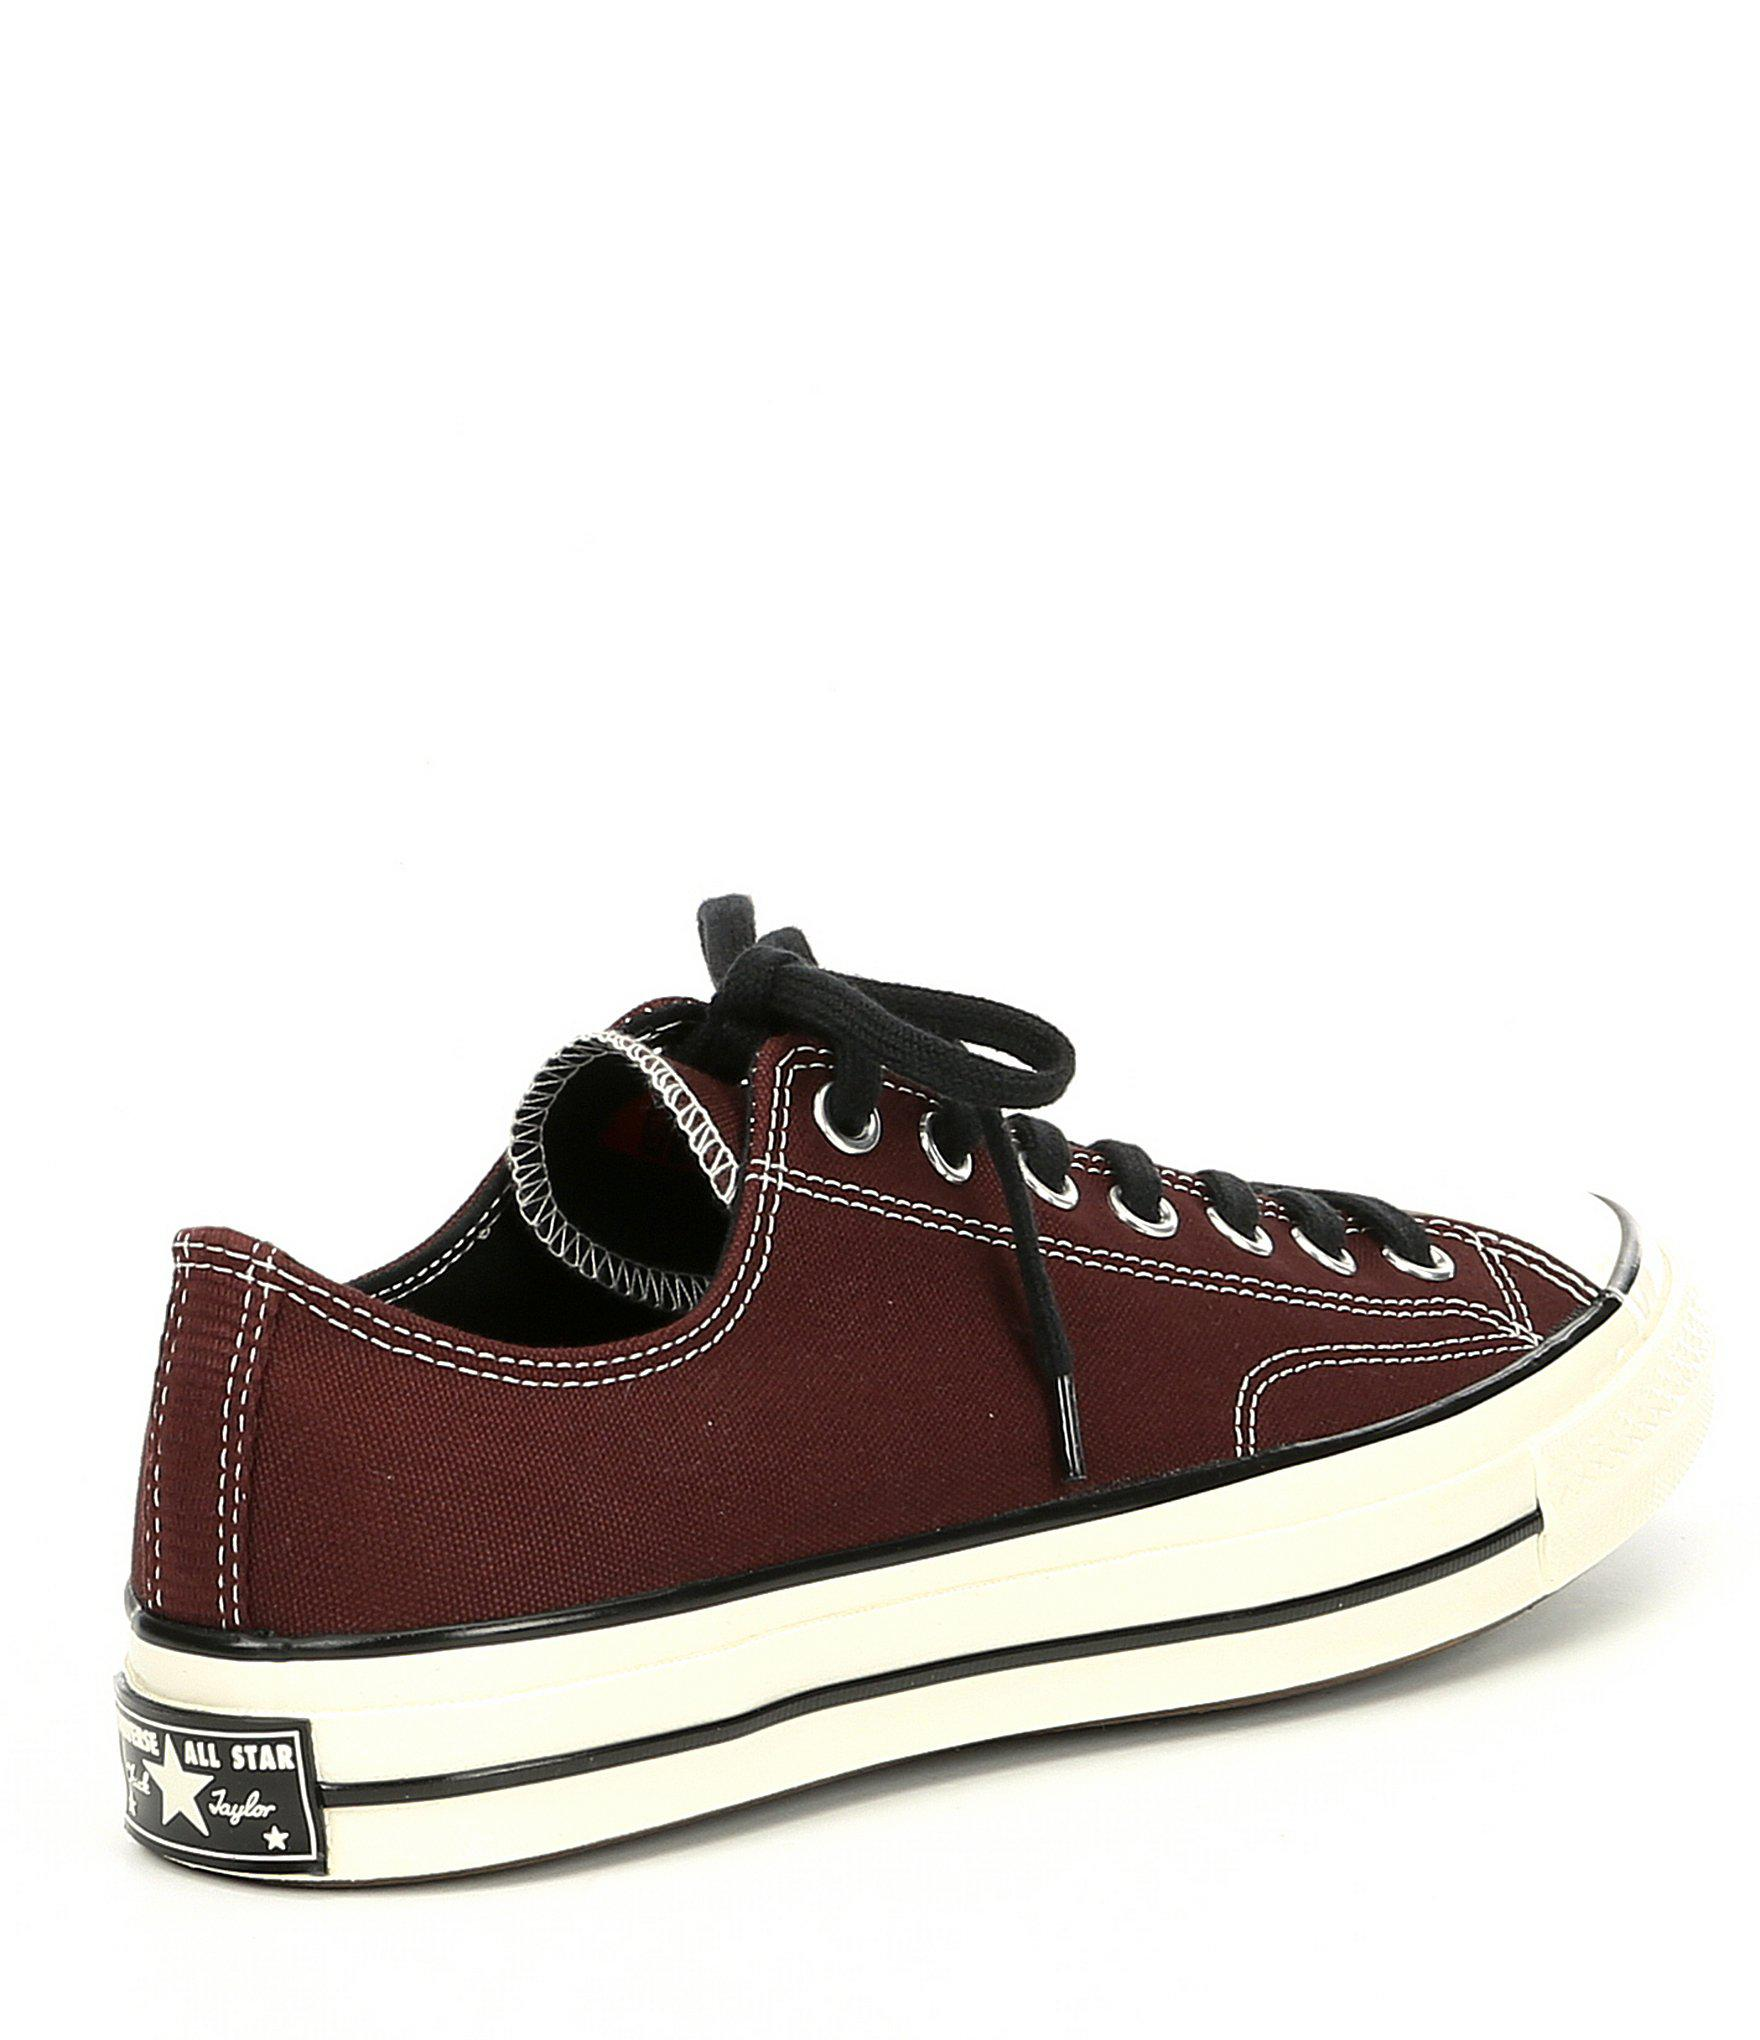 Converse - Brown Men s Chuck 70 Heritage Court Oxford for Men - Lyst. View  fullscreen 7d24efbef